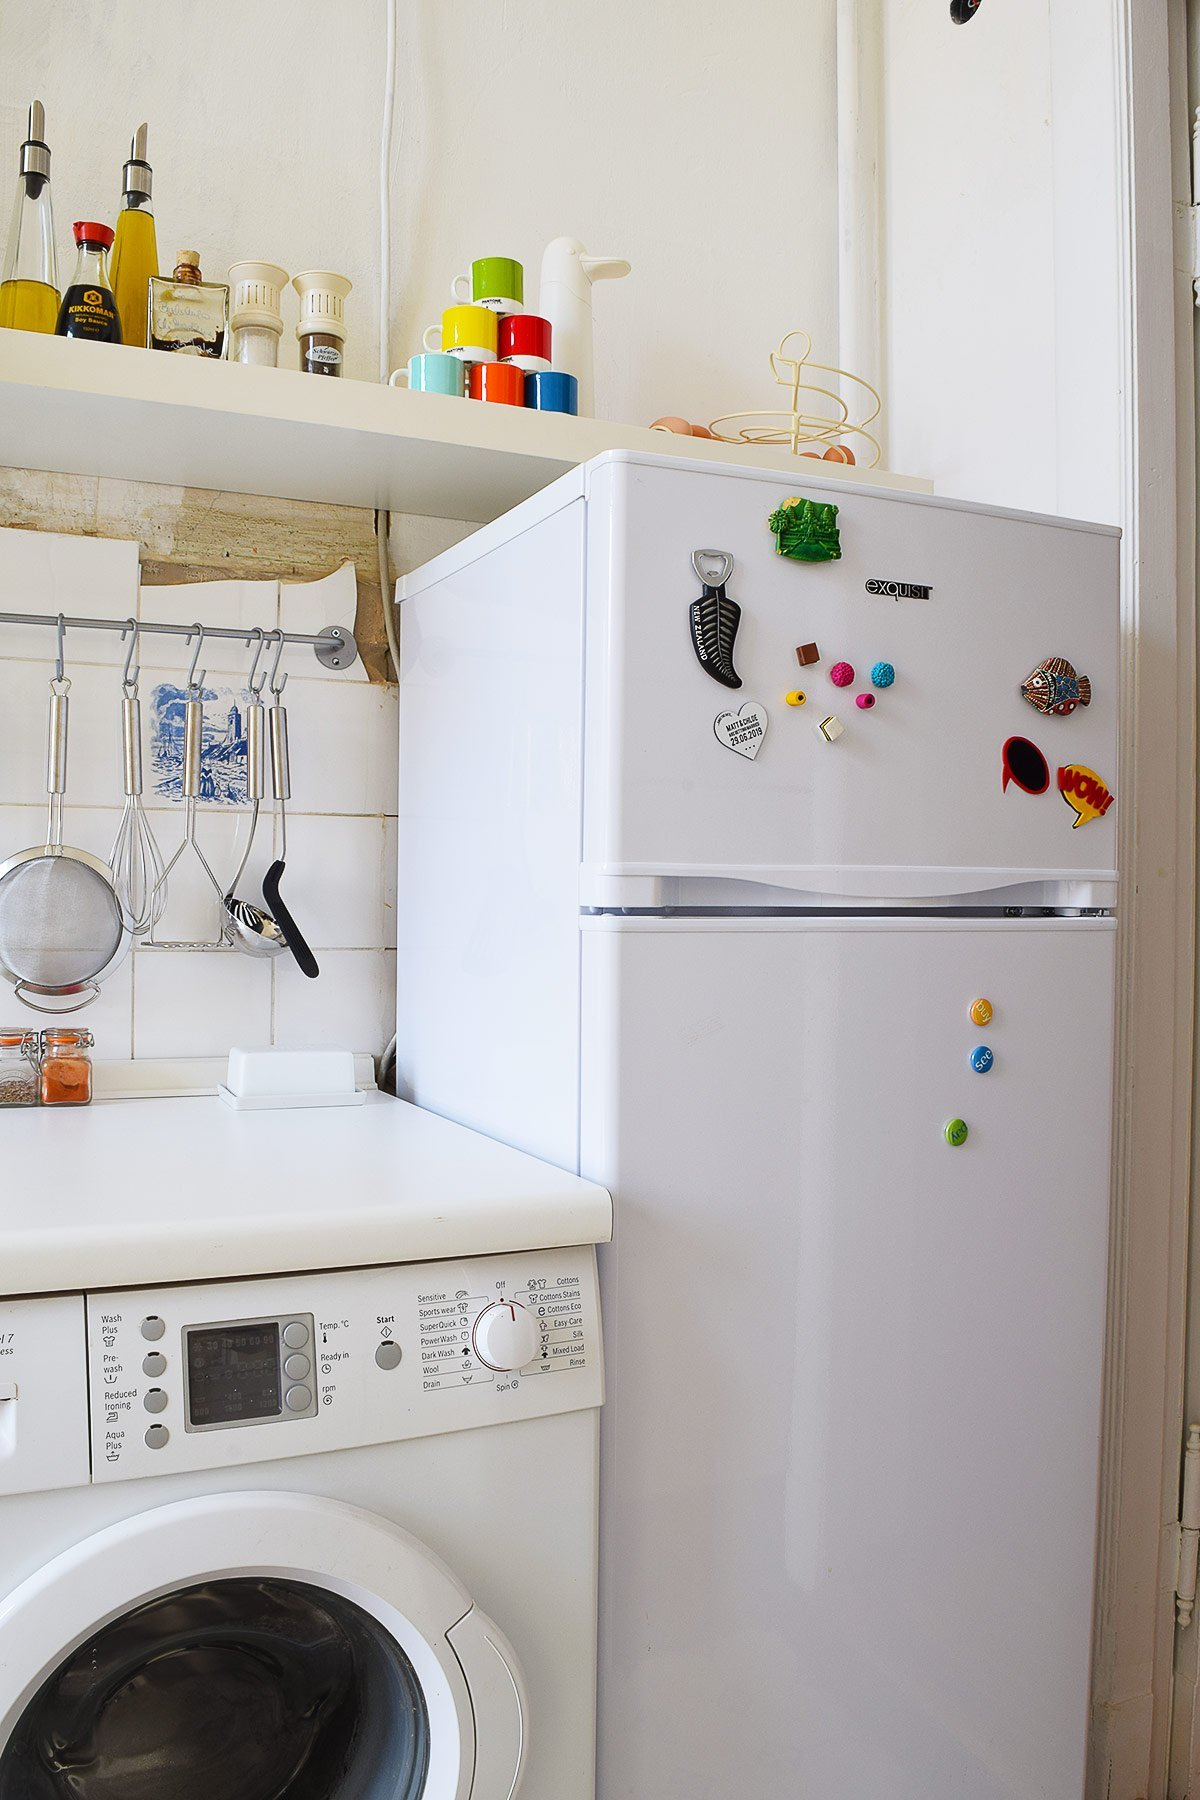 How To Paint A Fridge | Little House On The Corner